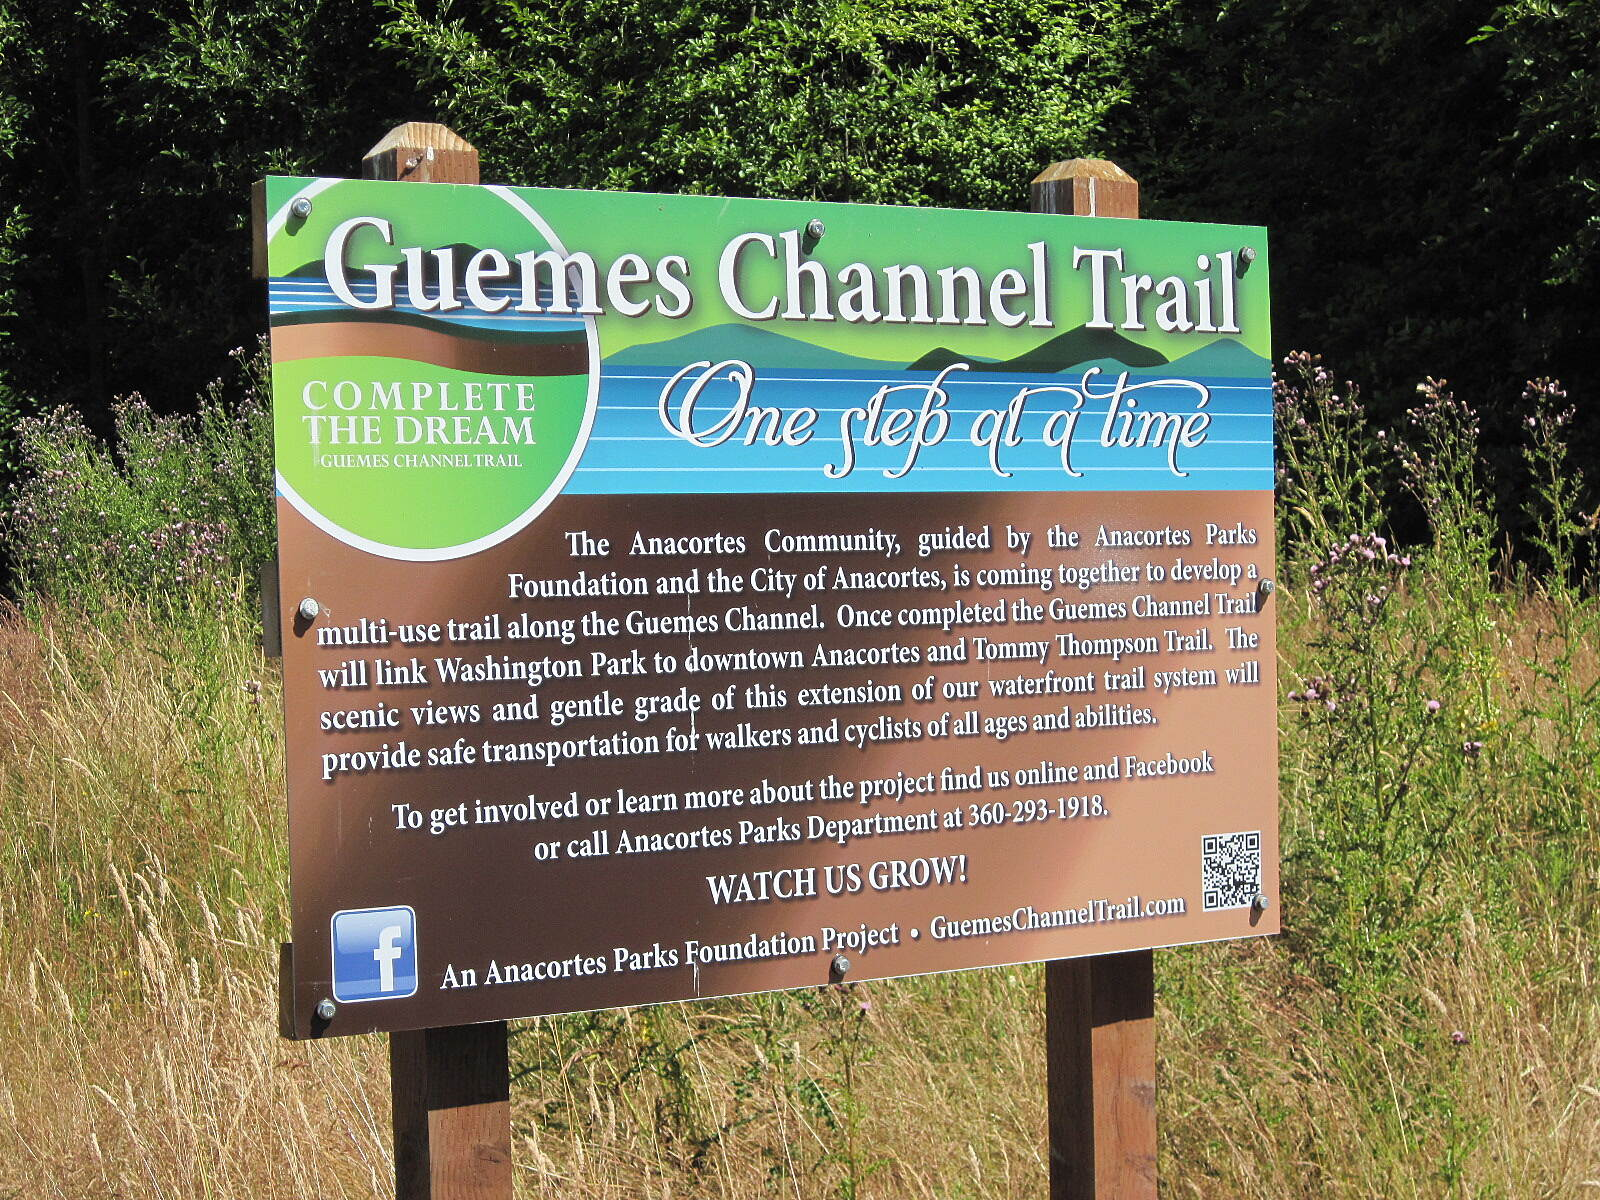 Guemes Channel Trail GUEMES CHANNEL TRAIL The trail sign explains all.